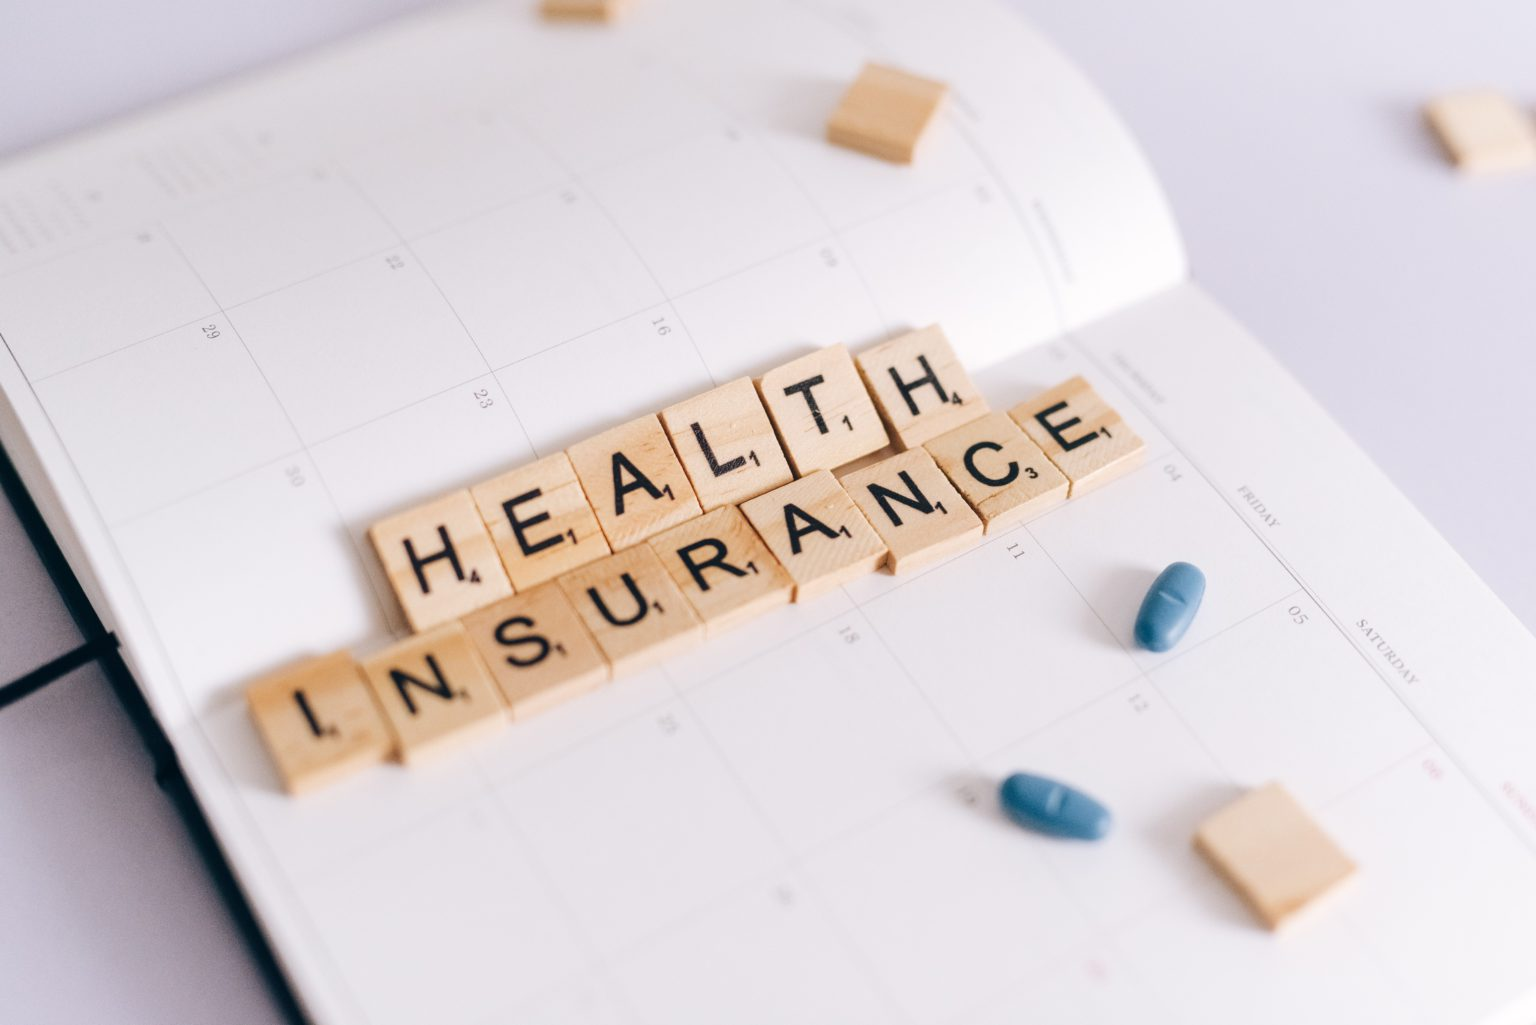 HEALTH INSURANCE WE ACCEPTED